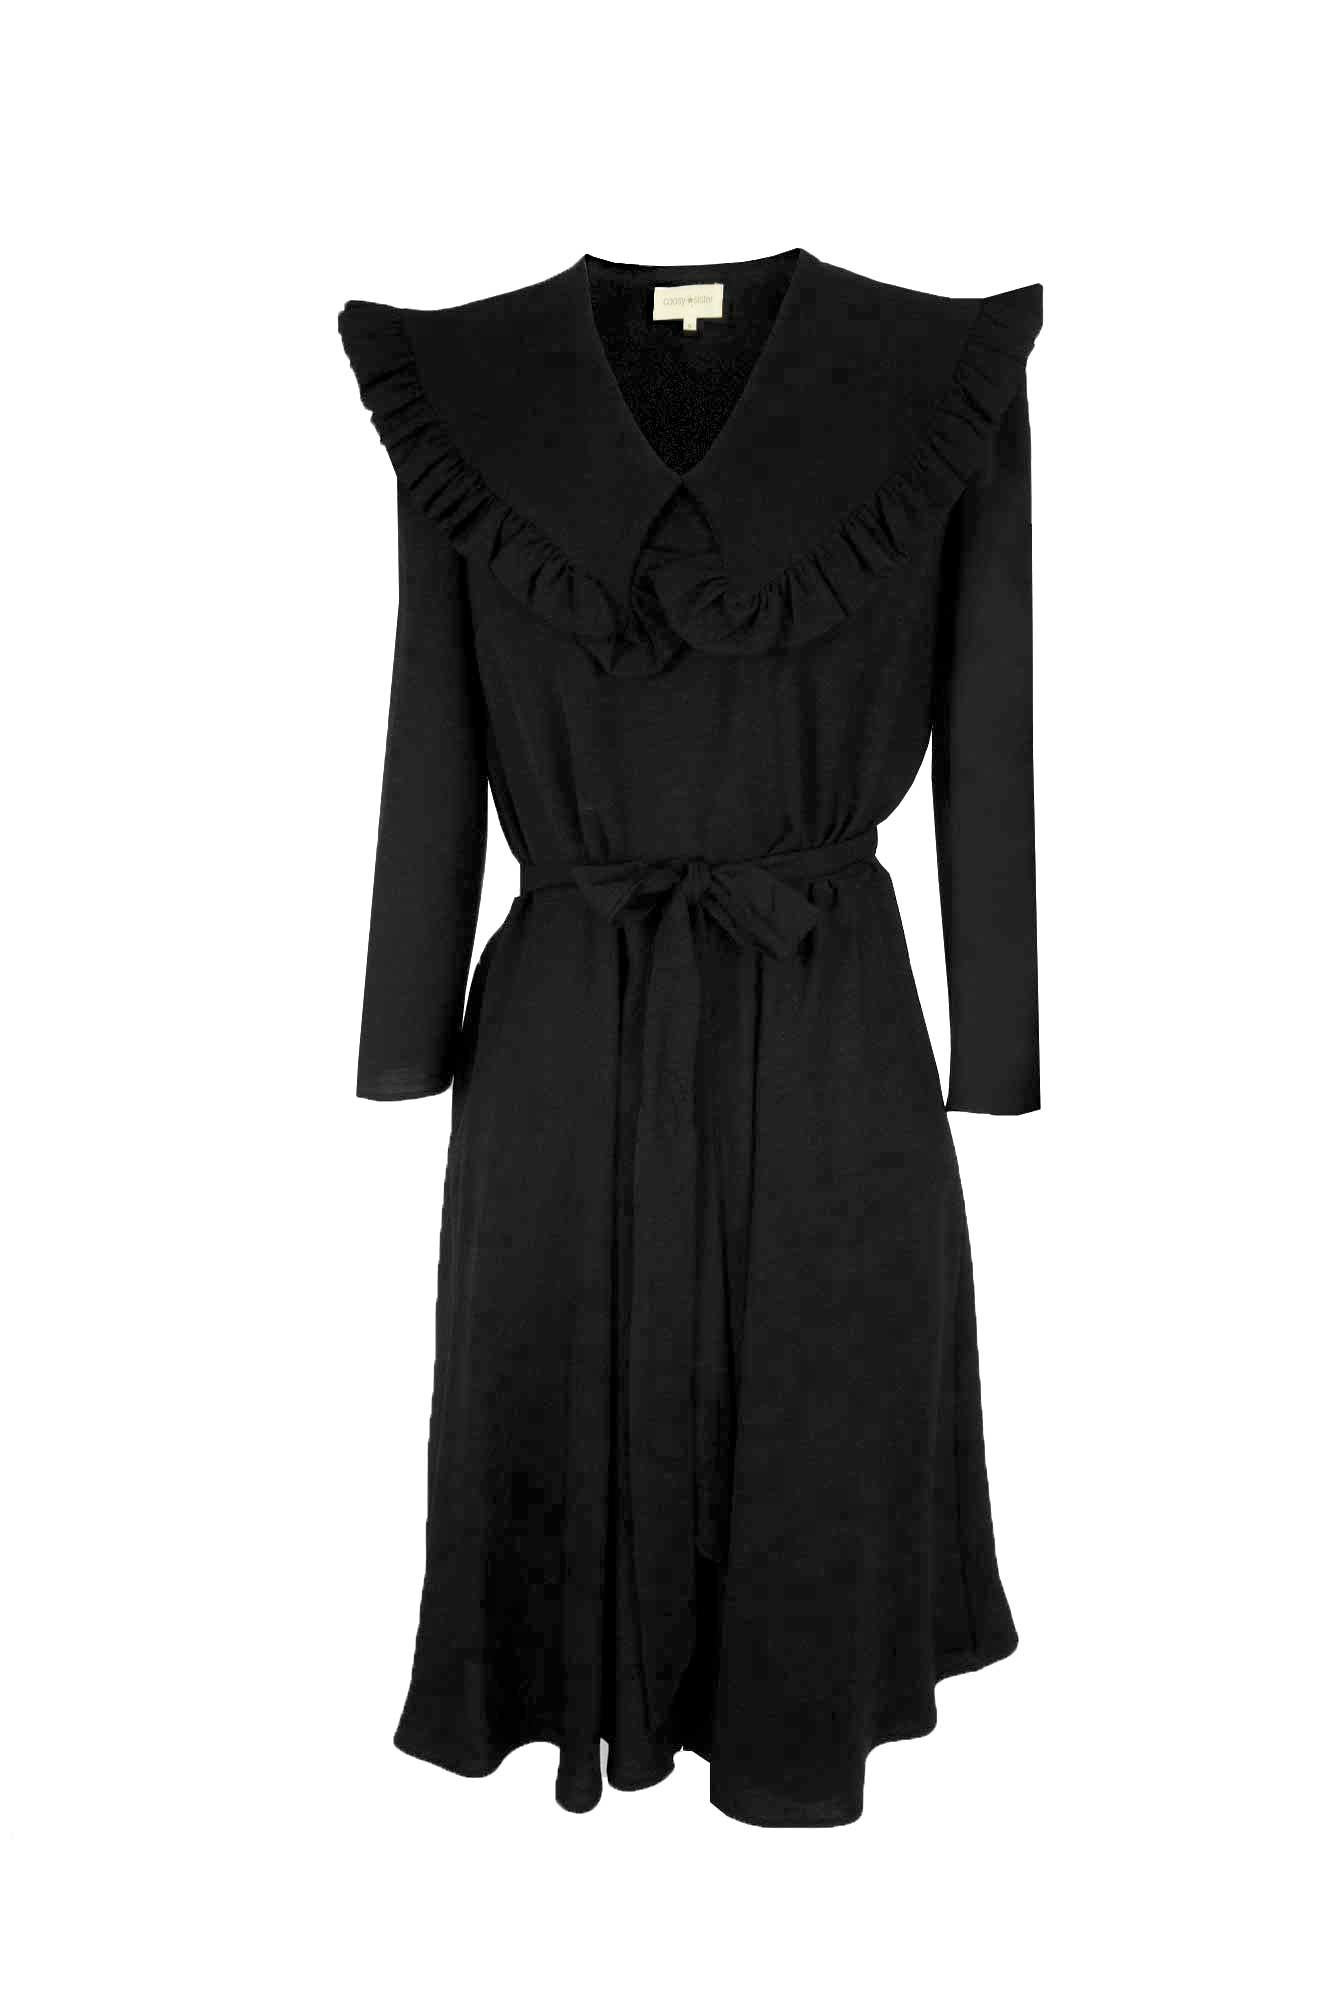 SISTER BERNARD DRESS